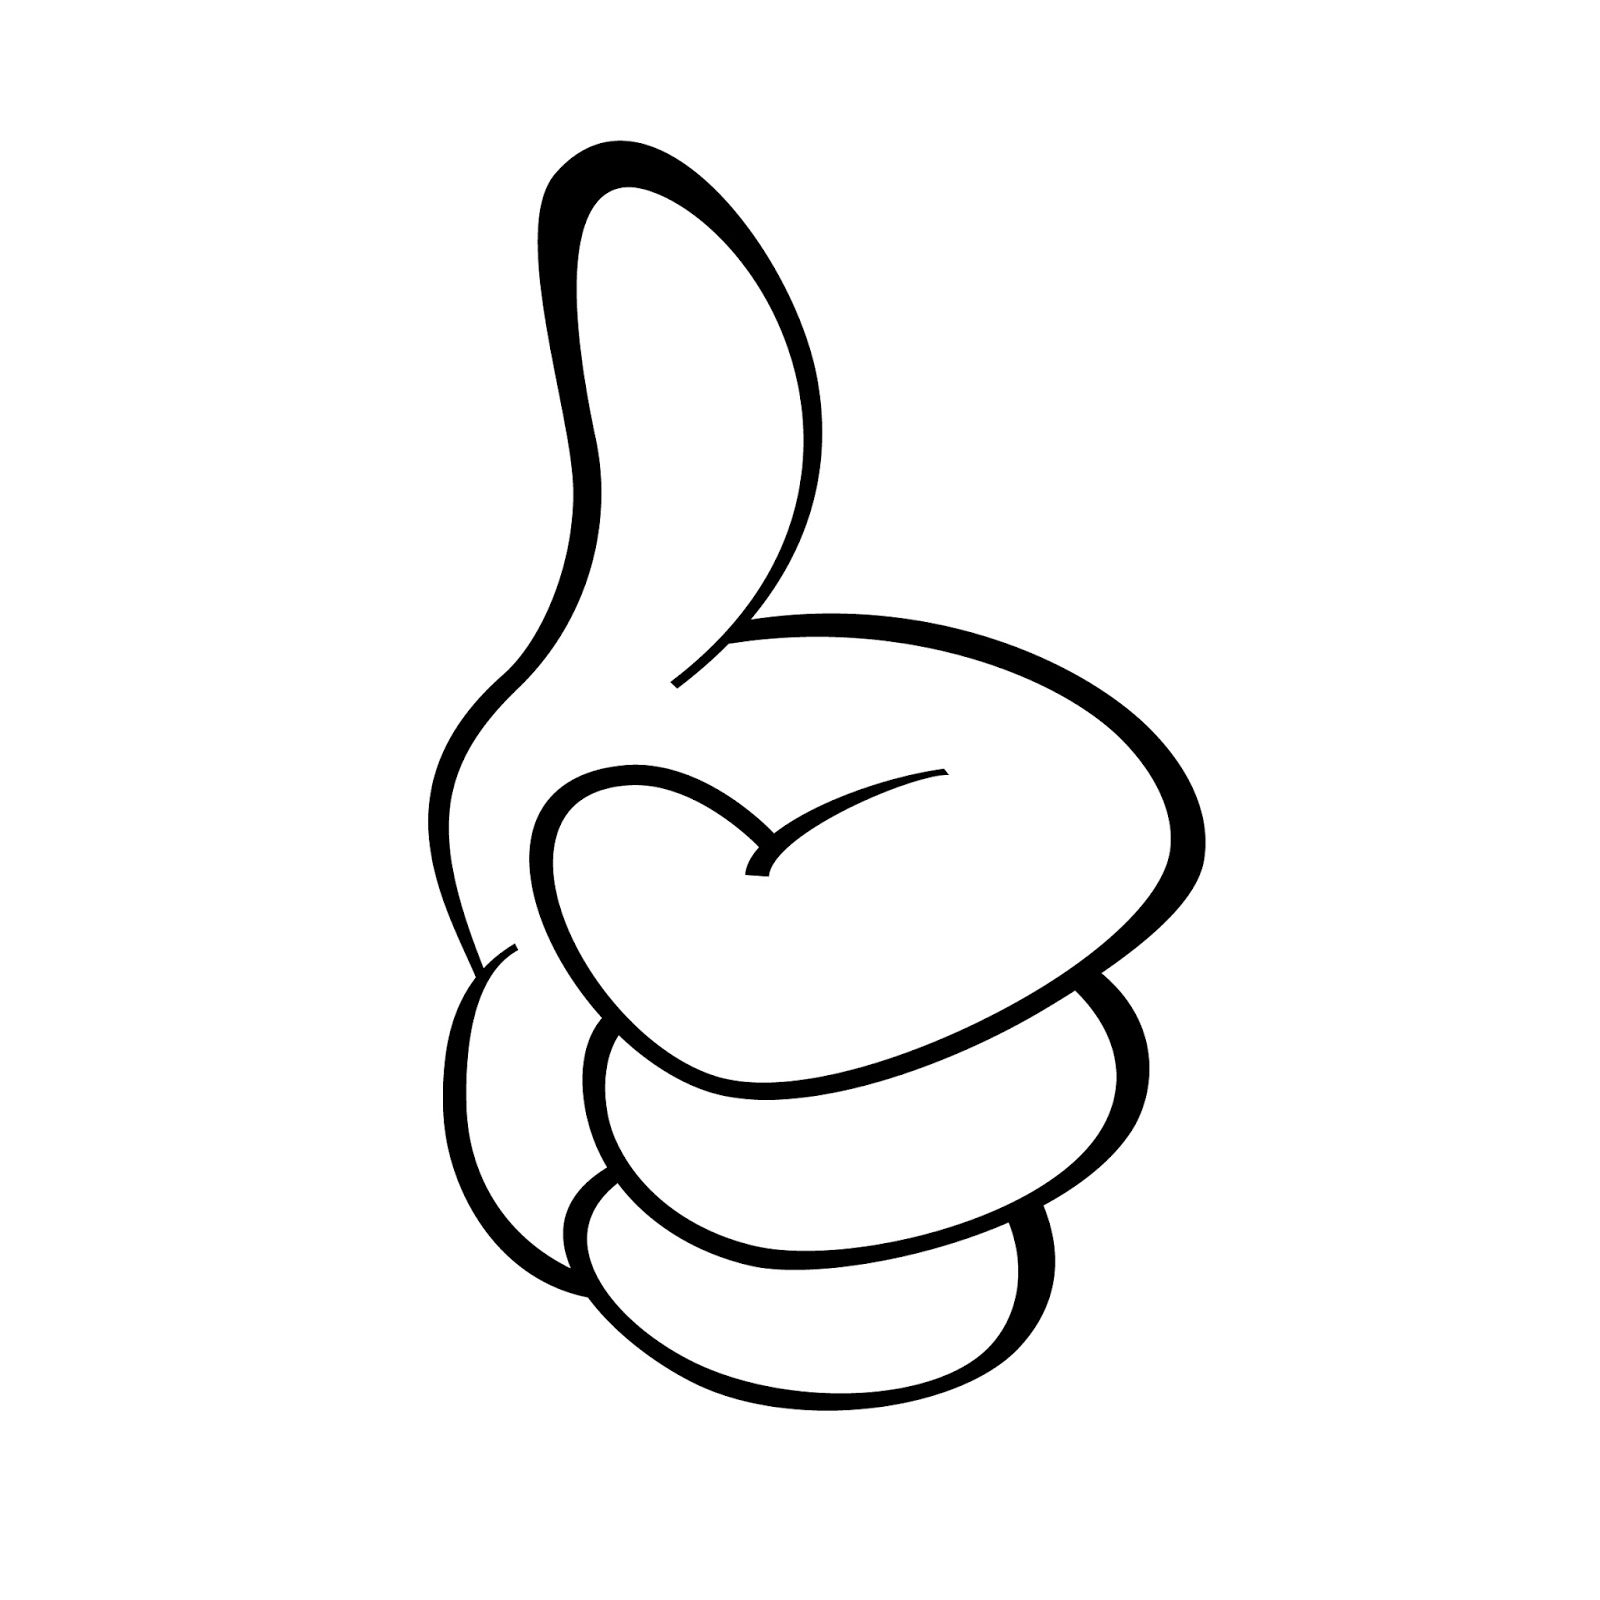 Thumbs up clipart free clip art free Expression Thumbs Up Clipart Clip art of Thumbs Up Clipart #1542 ... clip art free